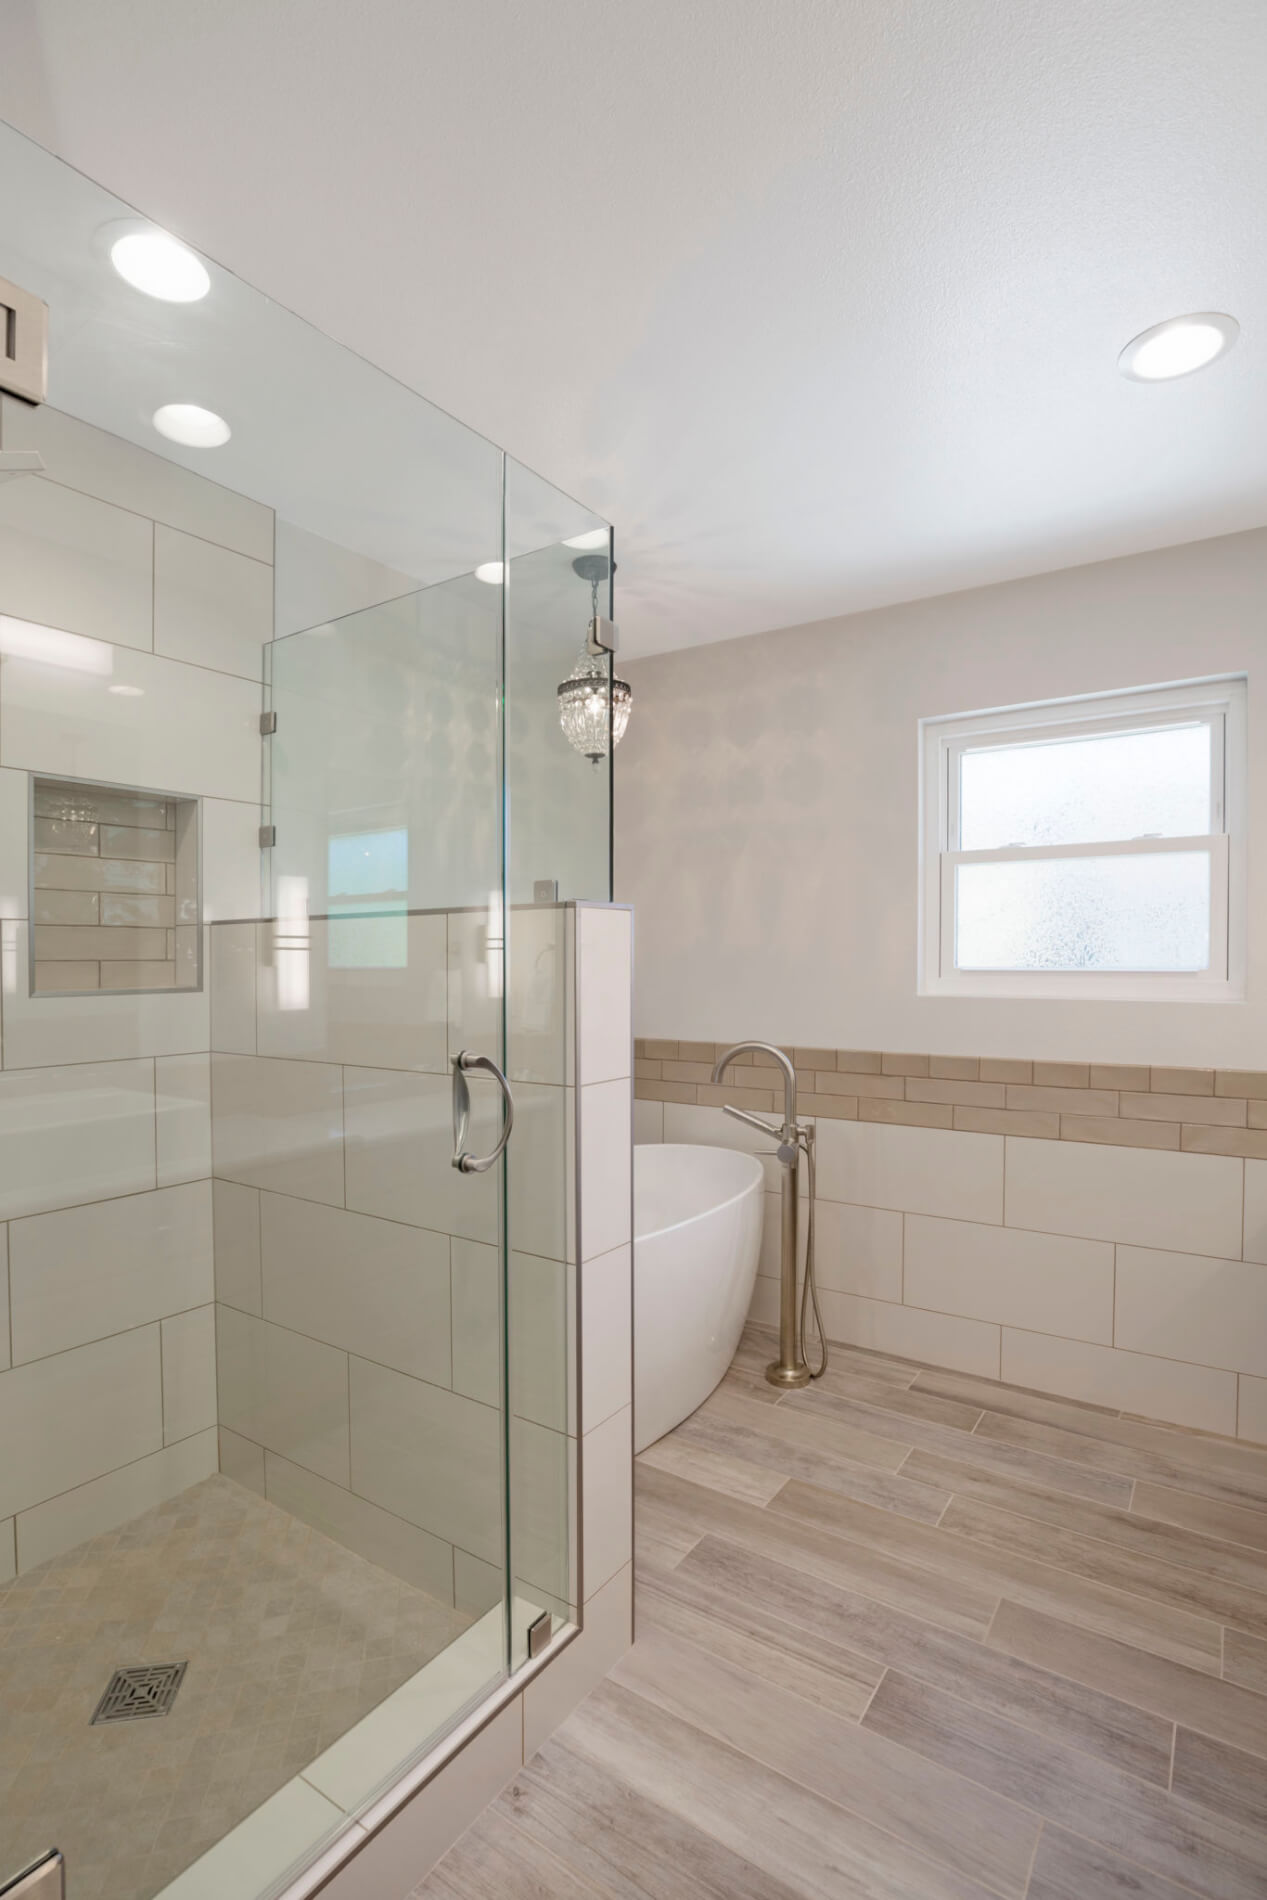 Master Bathroom Luxury Shower Remodel, Master Bathroom Remodel, Master Bathroom Remodel Orange County